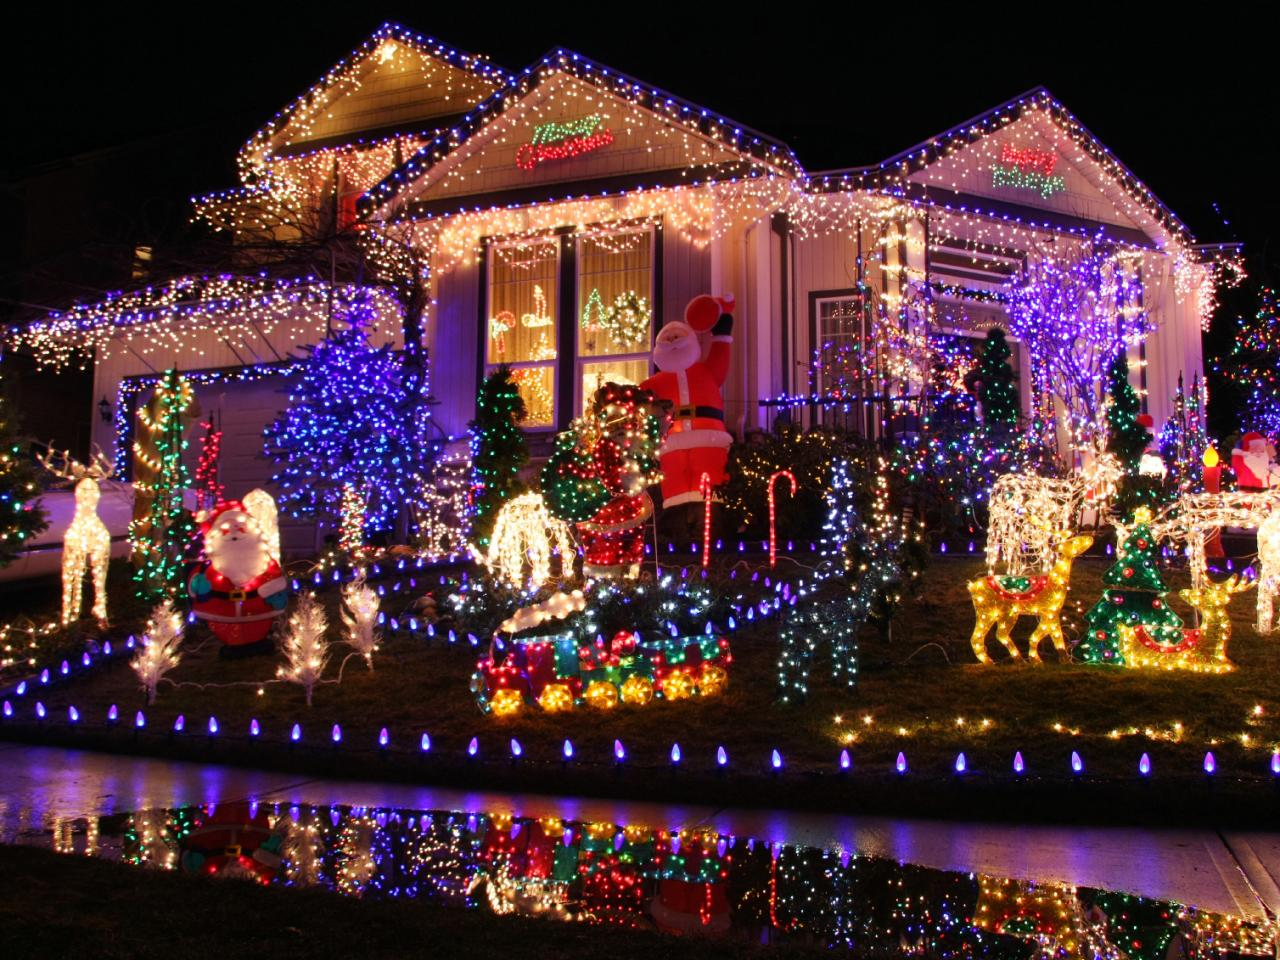 Trends in Christmas Light Decorations